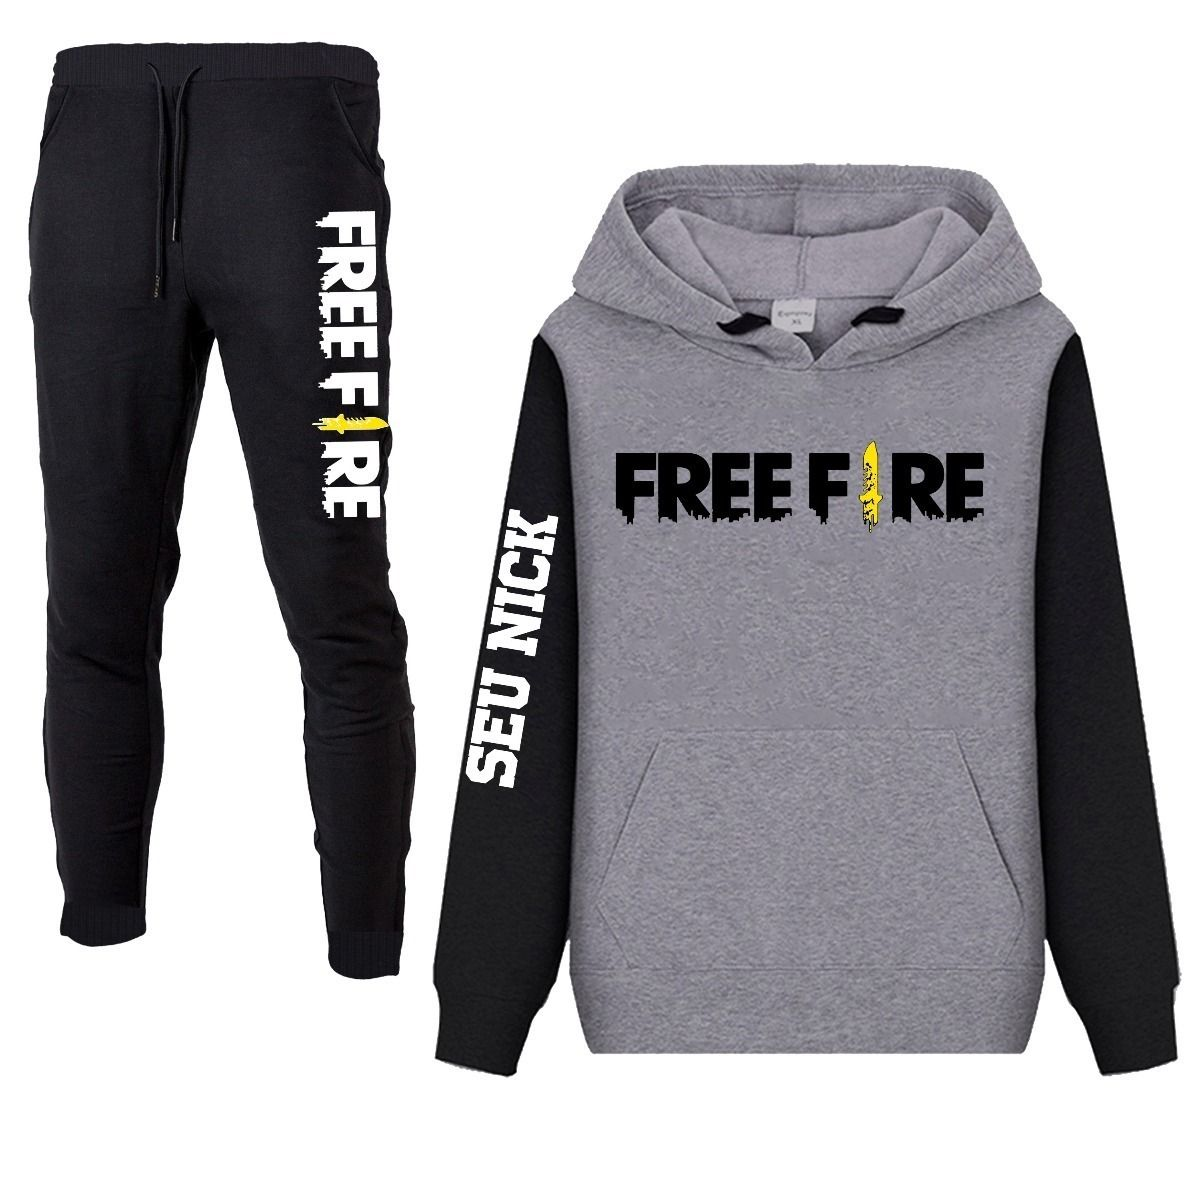 free fire ropa 4